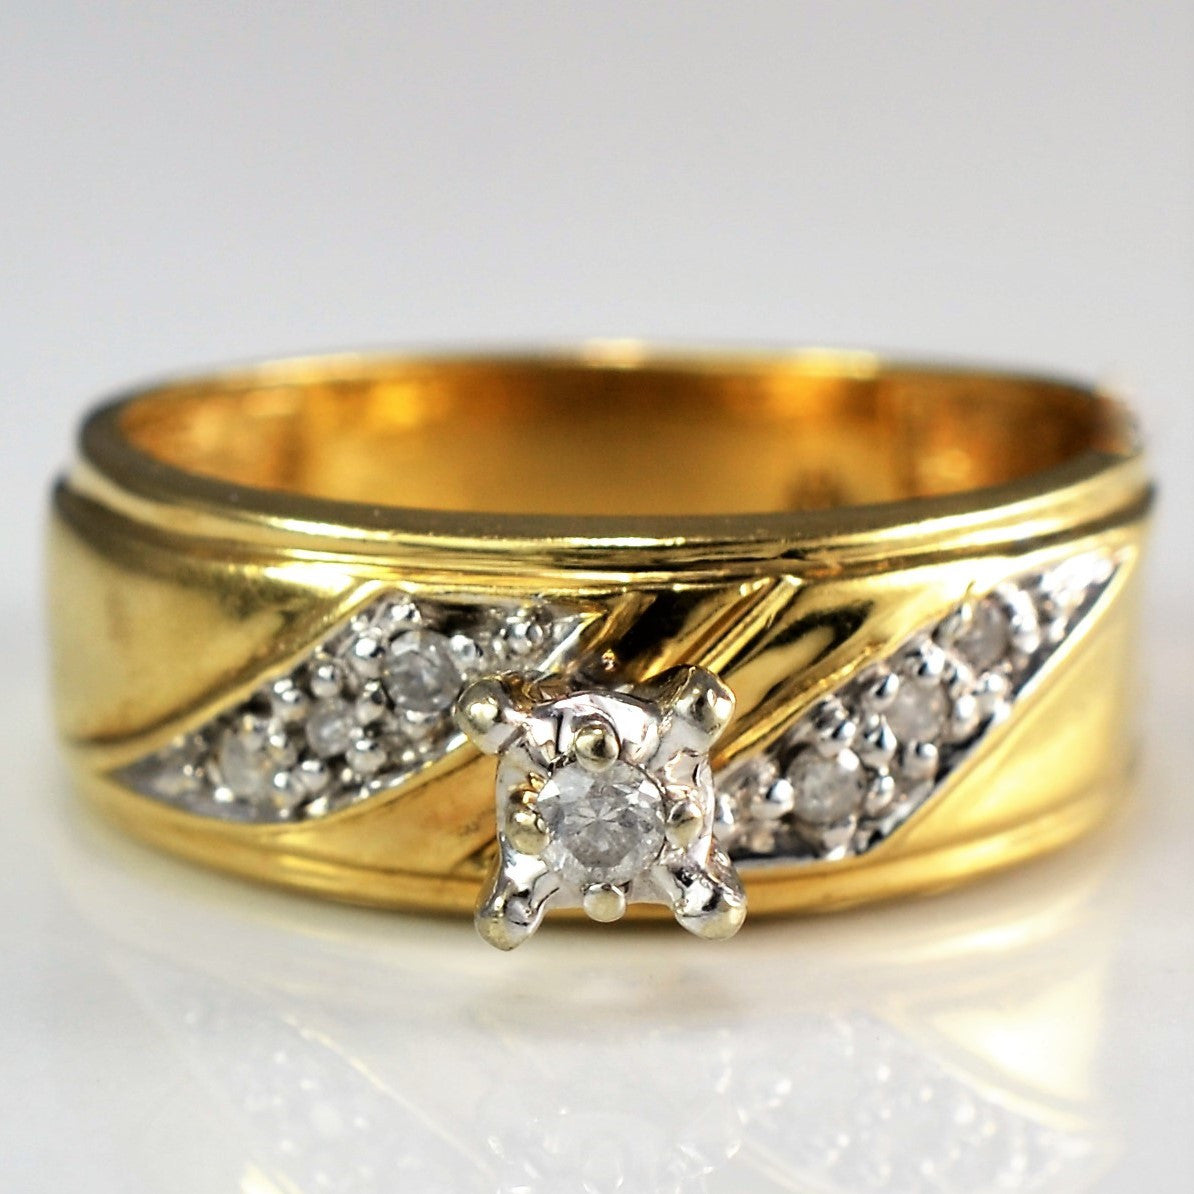 Vintage Diamond Engagement Ring | 0.06 ctw, SZ 5.25 |